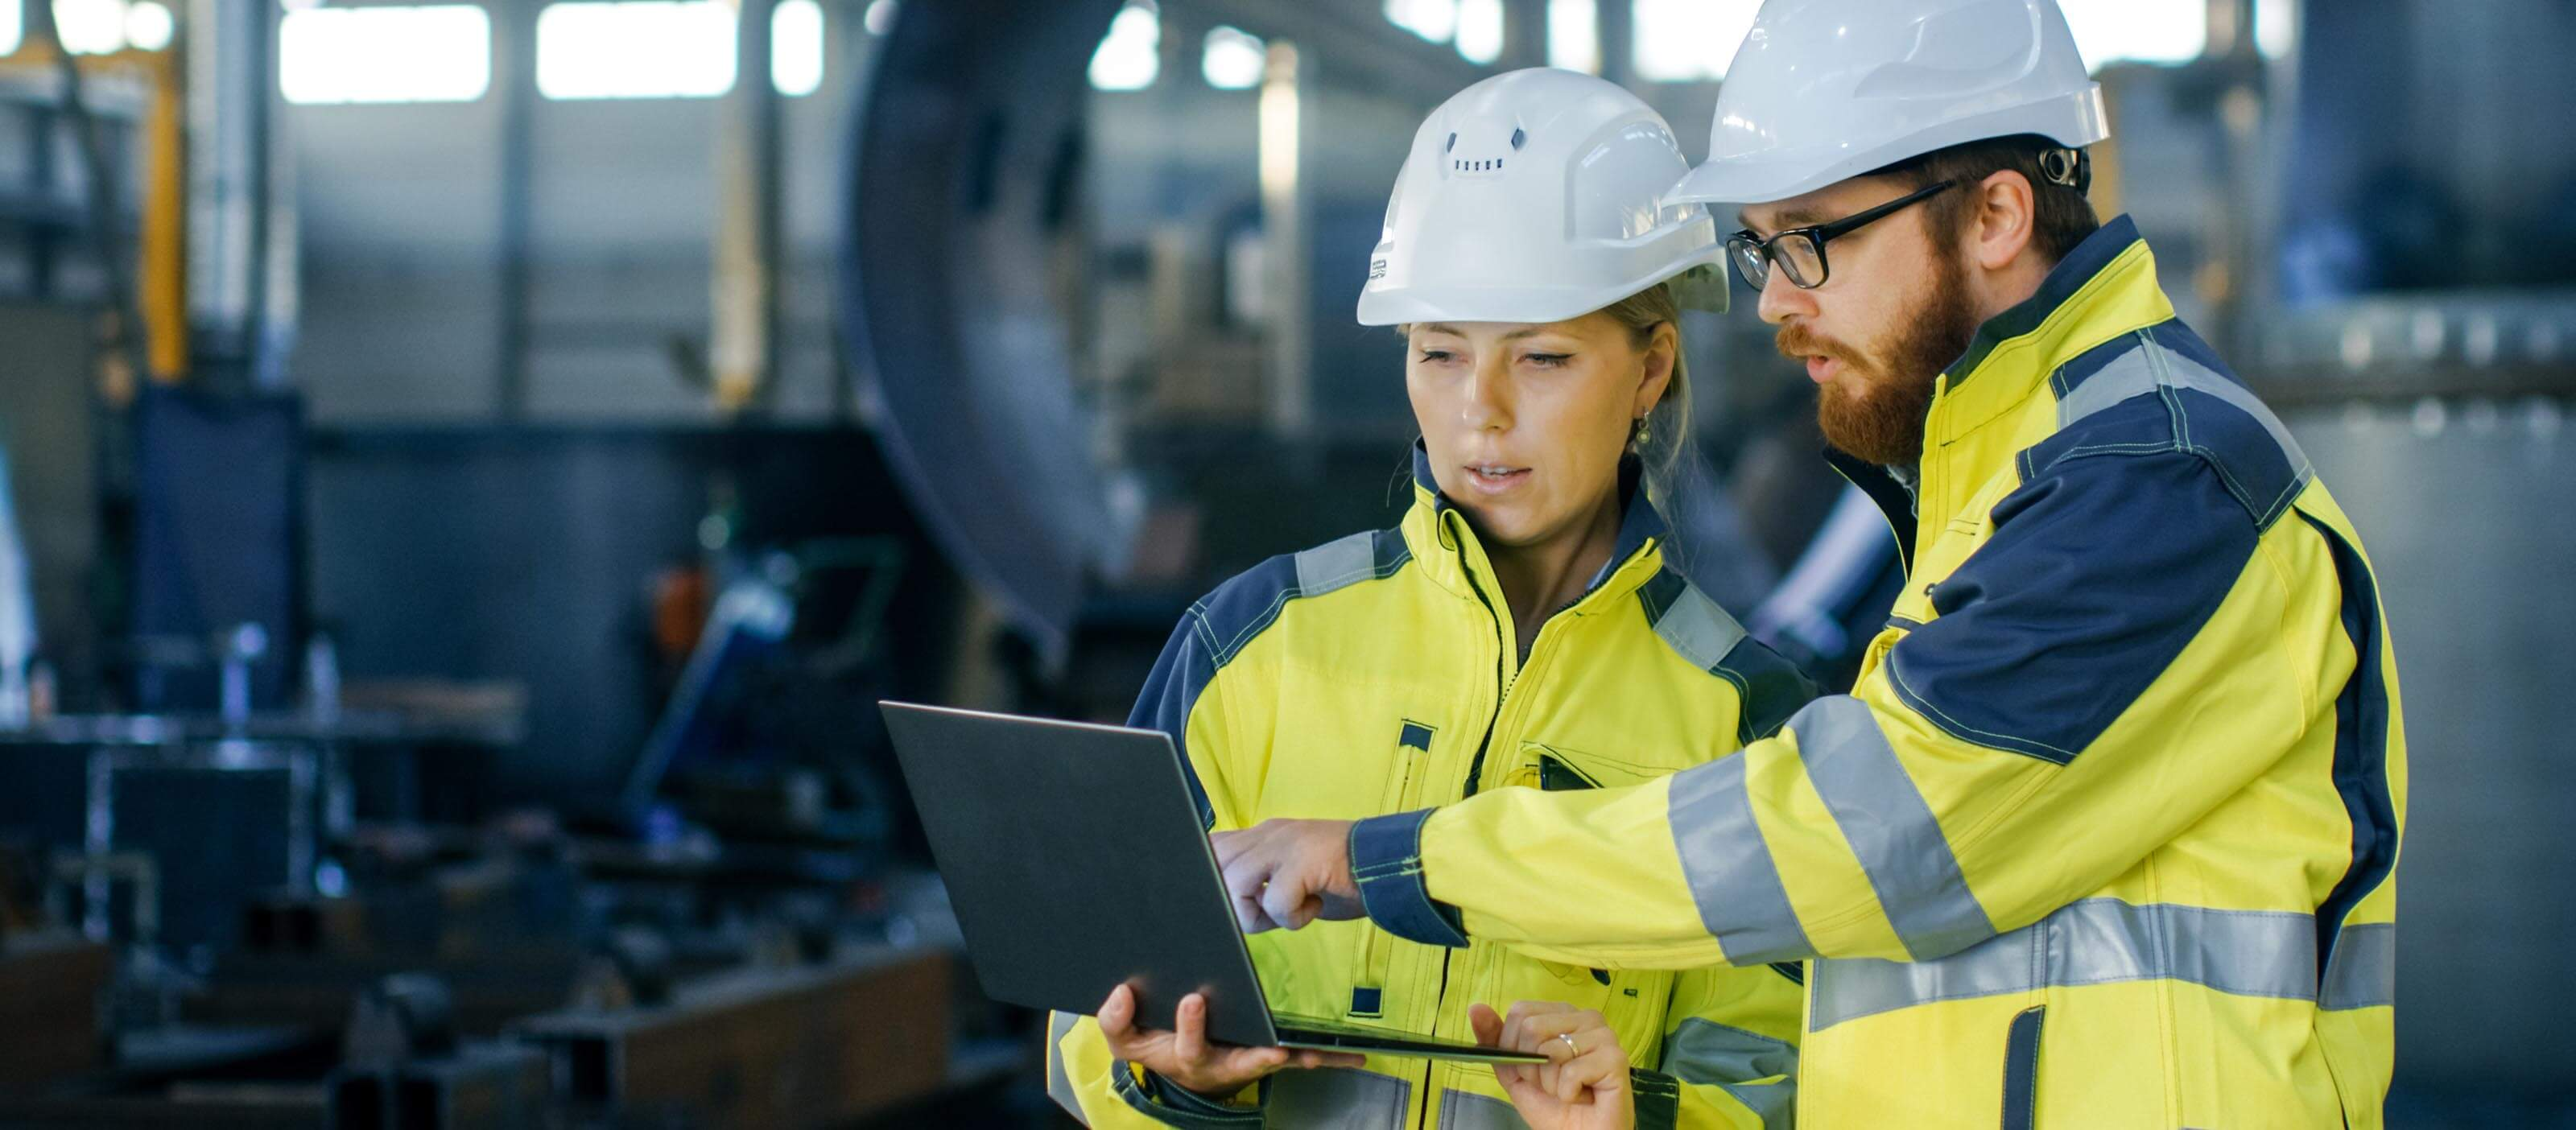 OPM Operational Intelligence with industrial workers   GE Digital